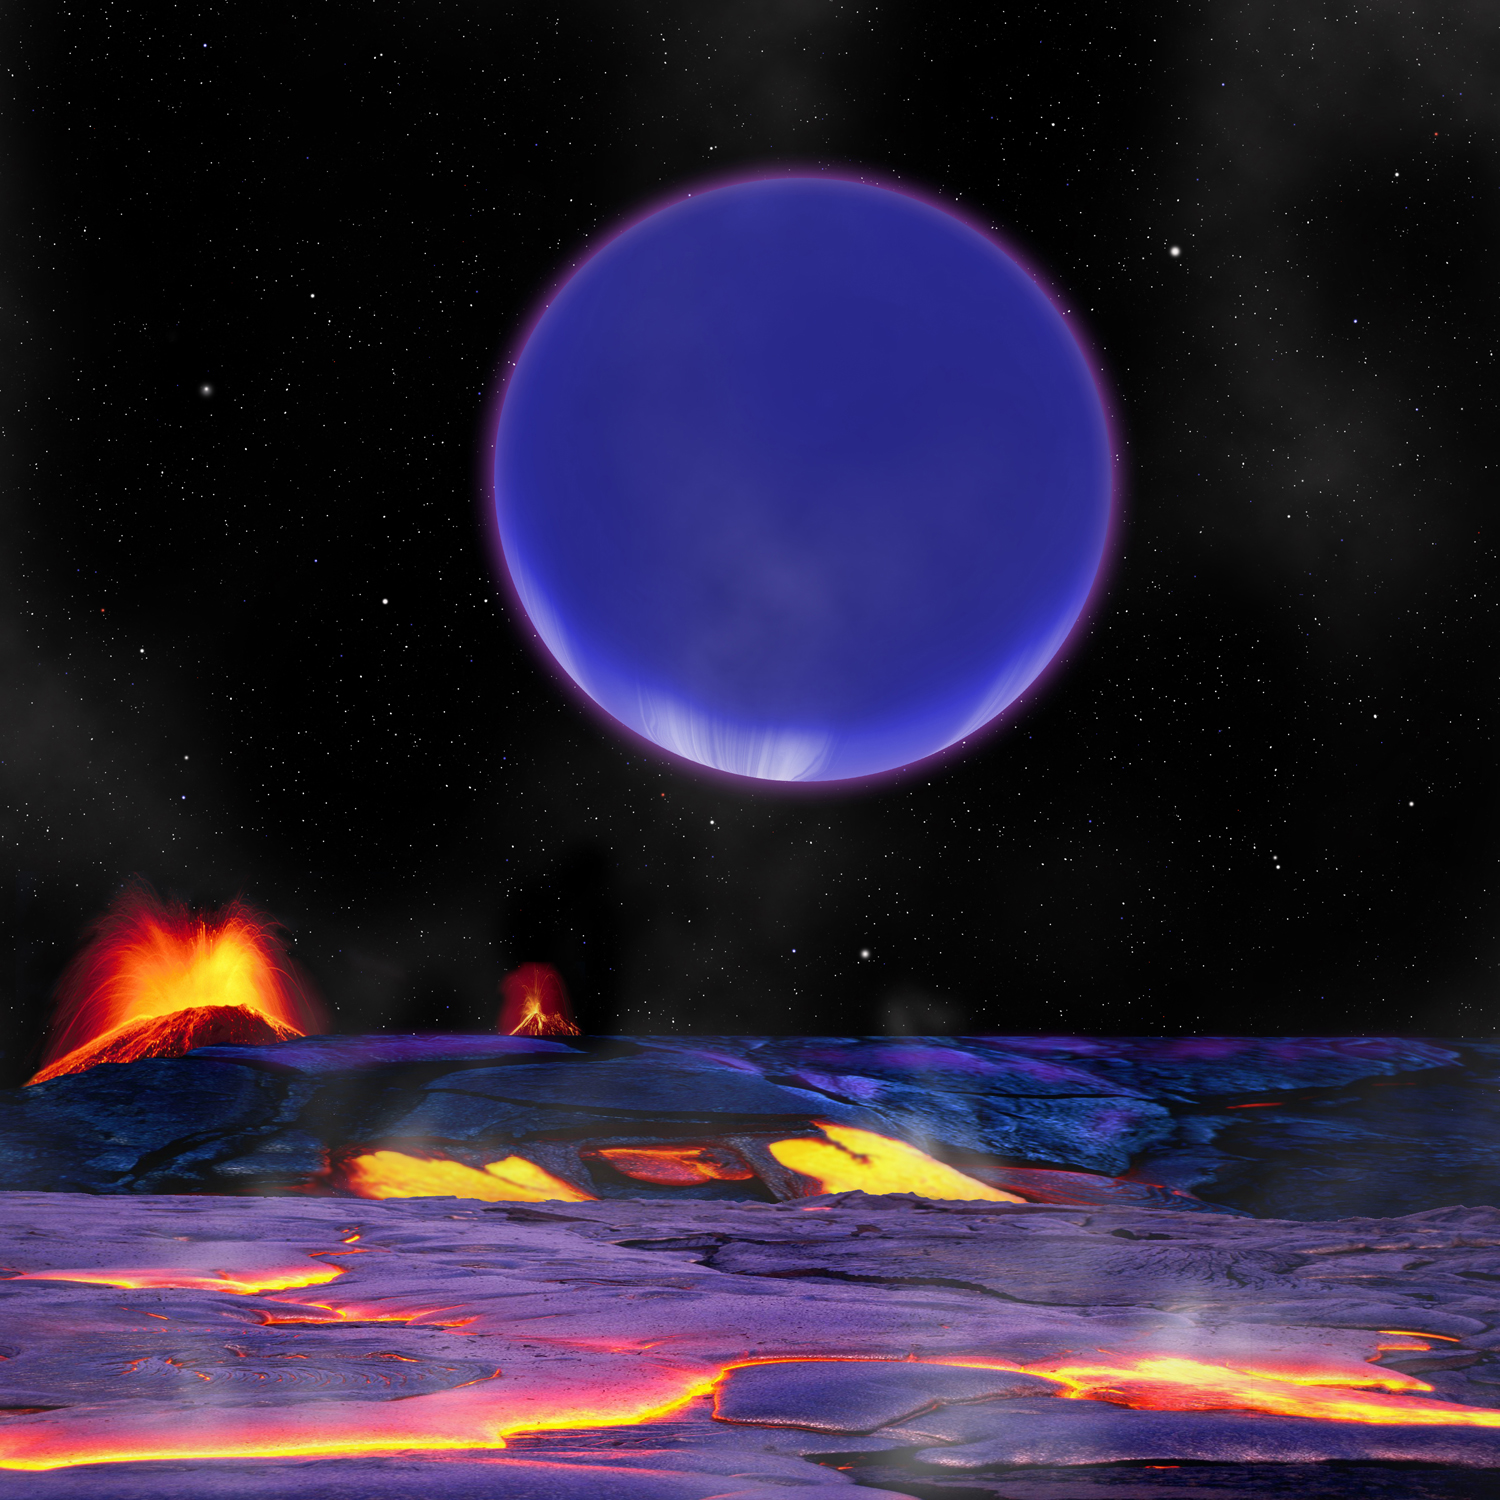 Alien Planet Quiz: Are You an Exoplanet Expert?